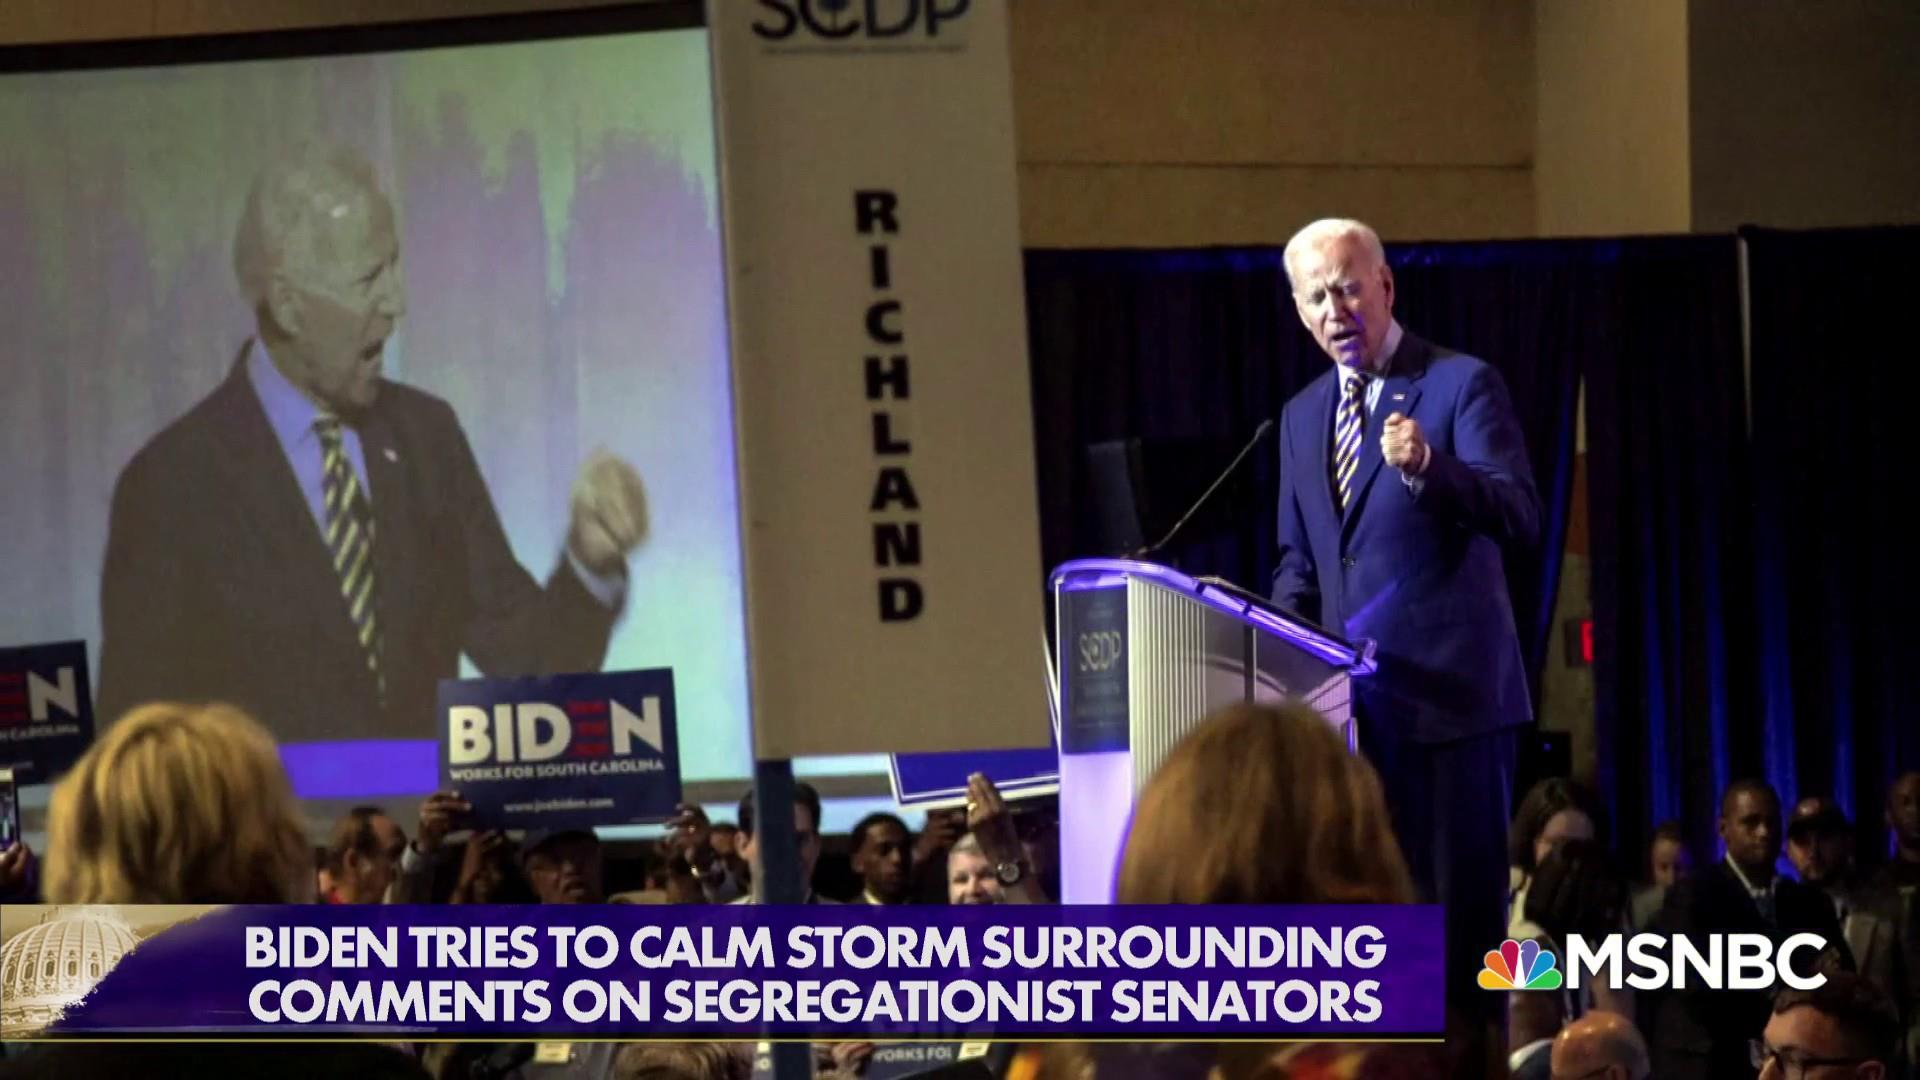 Biden: comments on segregationist Senators taken out of context